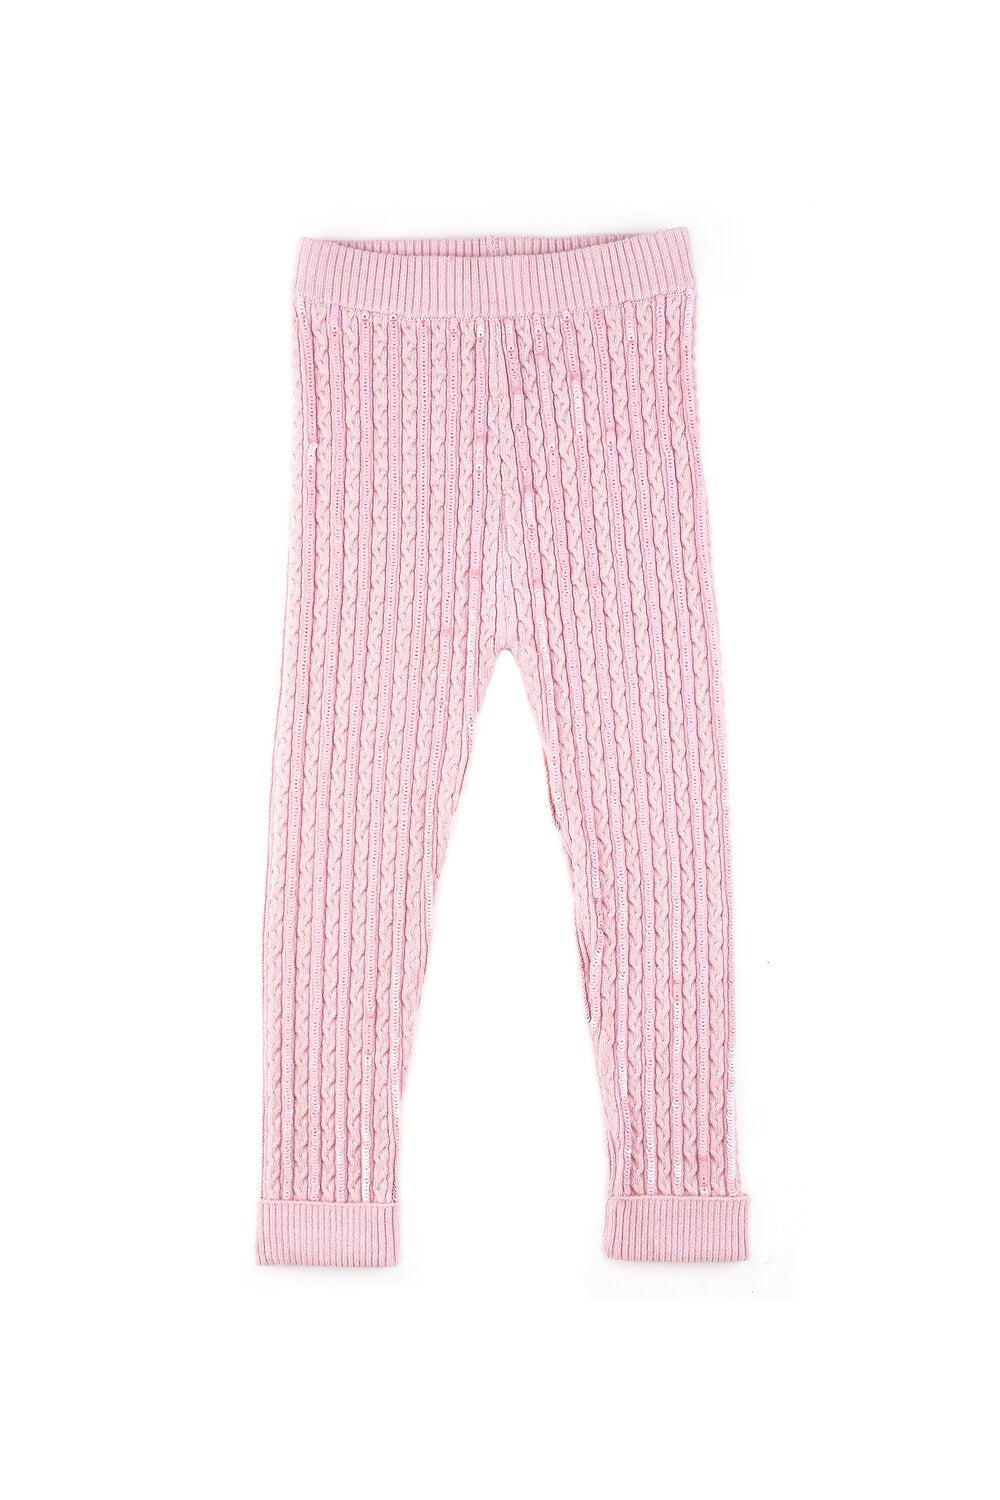 Little IA: Pink Sequin Embellished Leggings